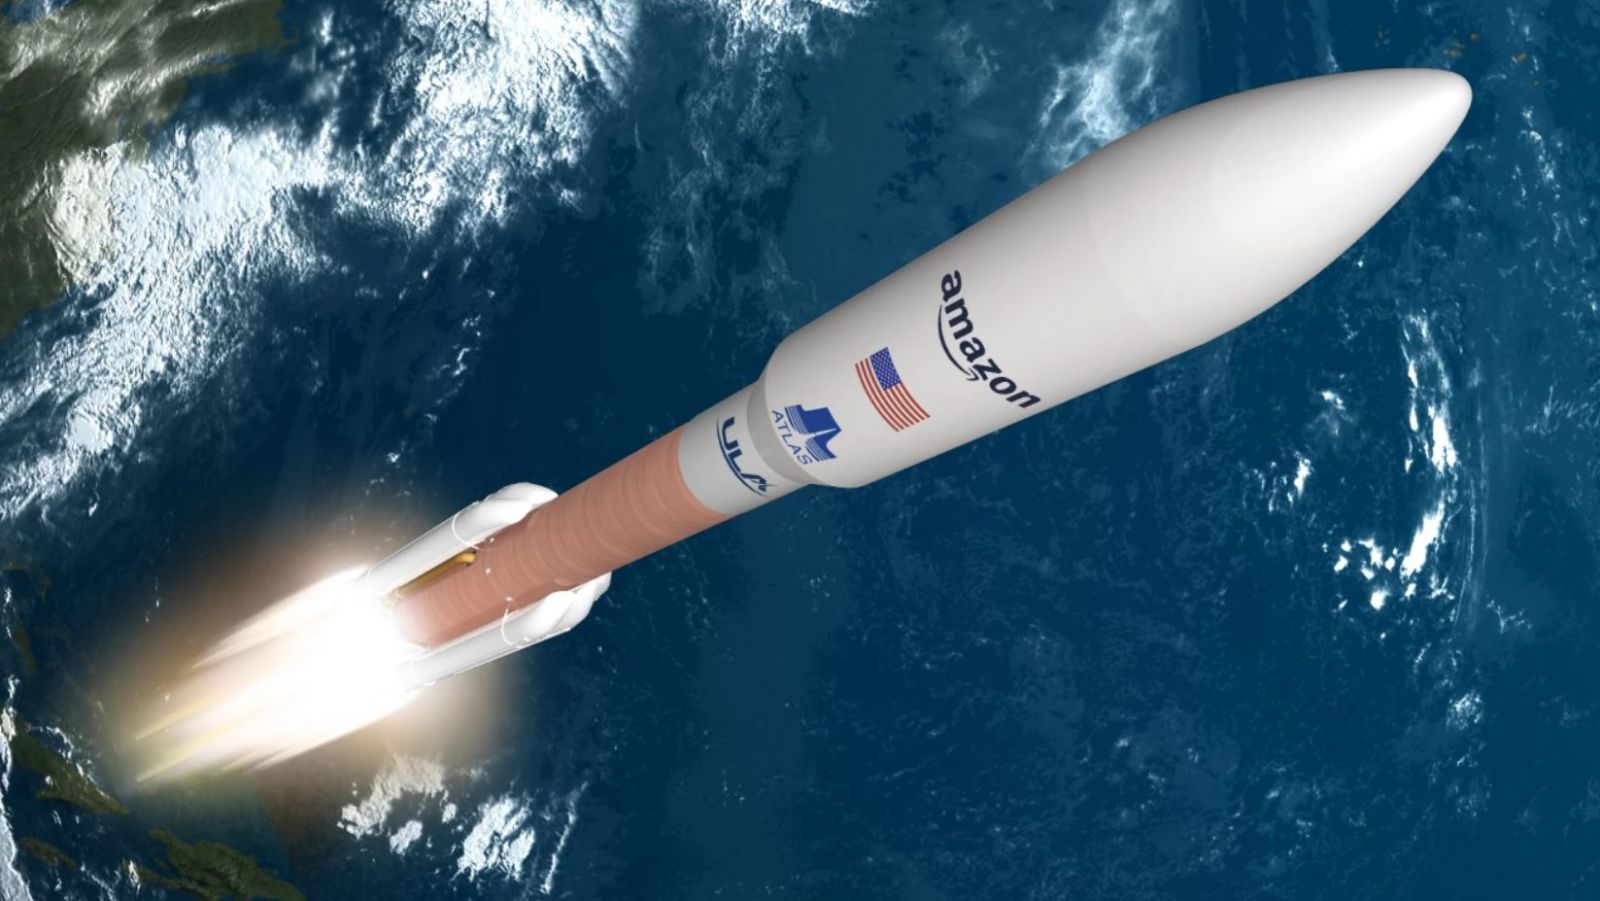 A rendering of an Atlas V rocket with Amazon's logo on the payload fairing. Credit: Amazon